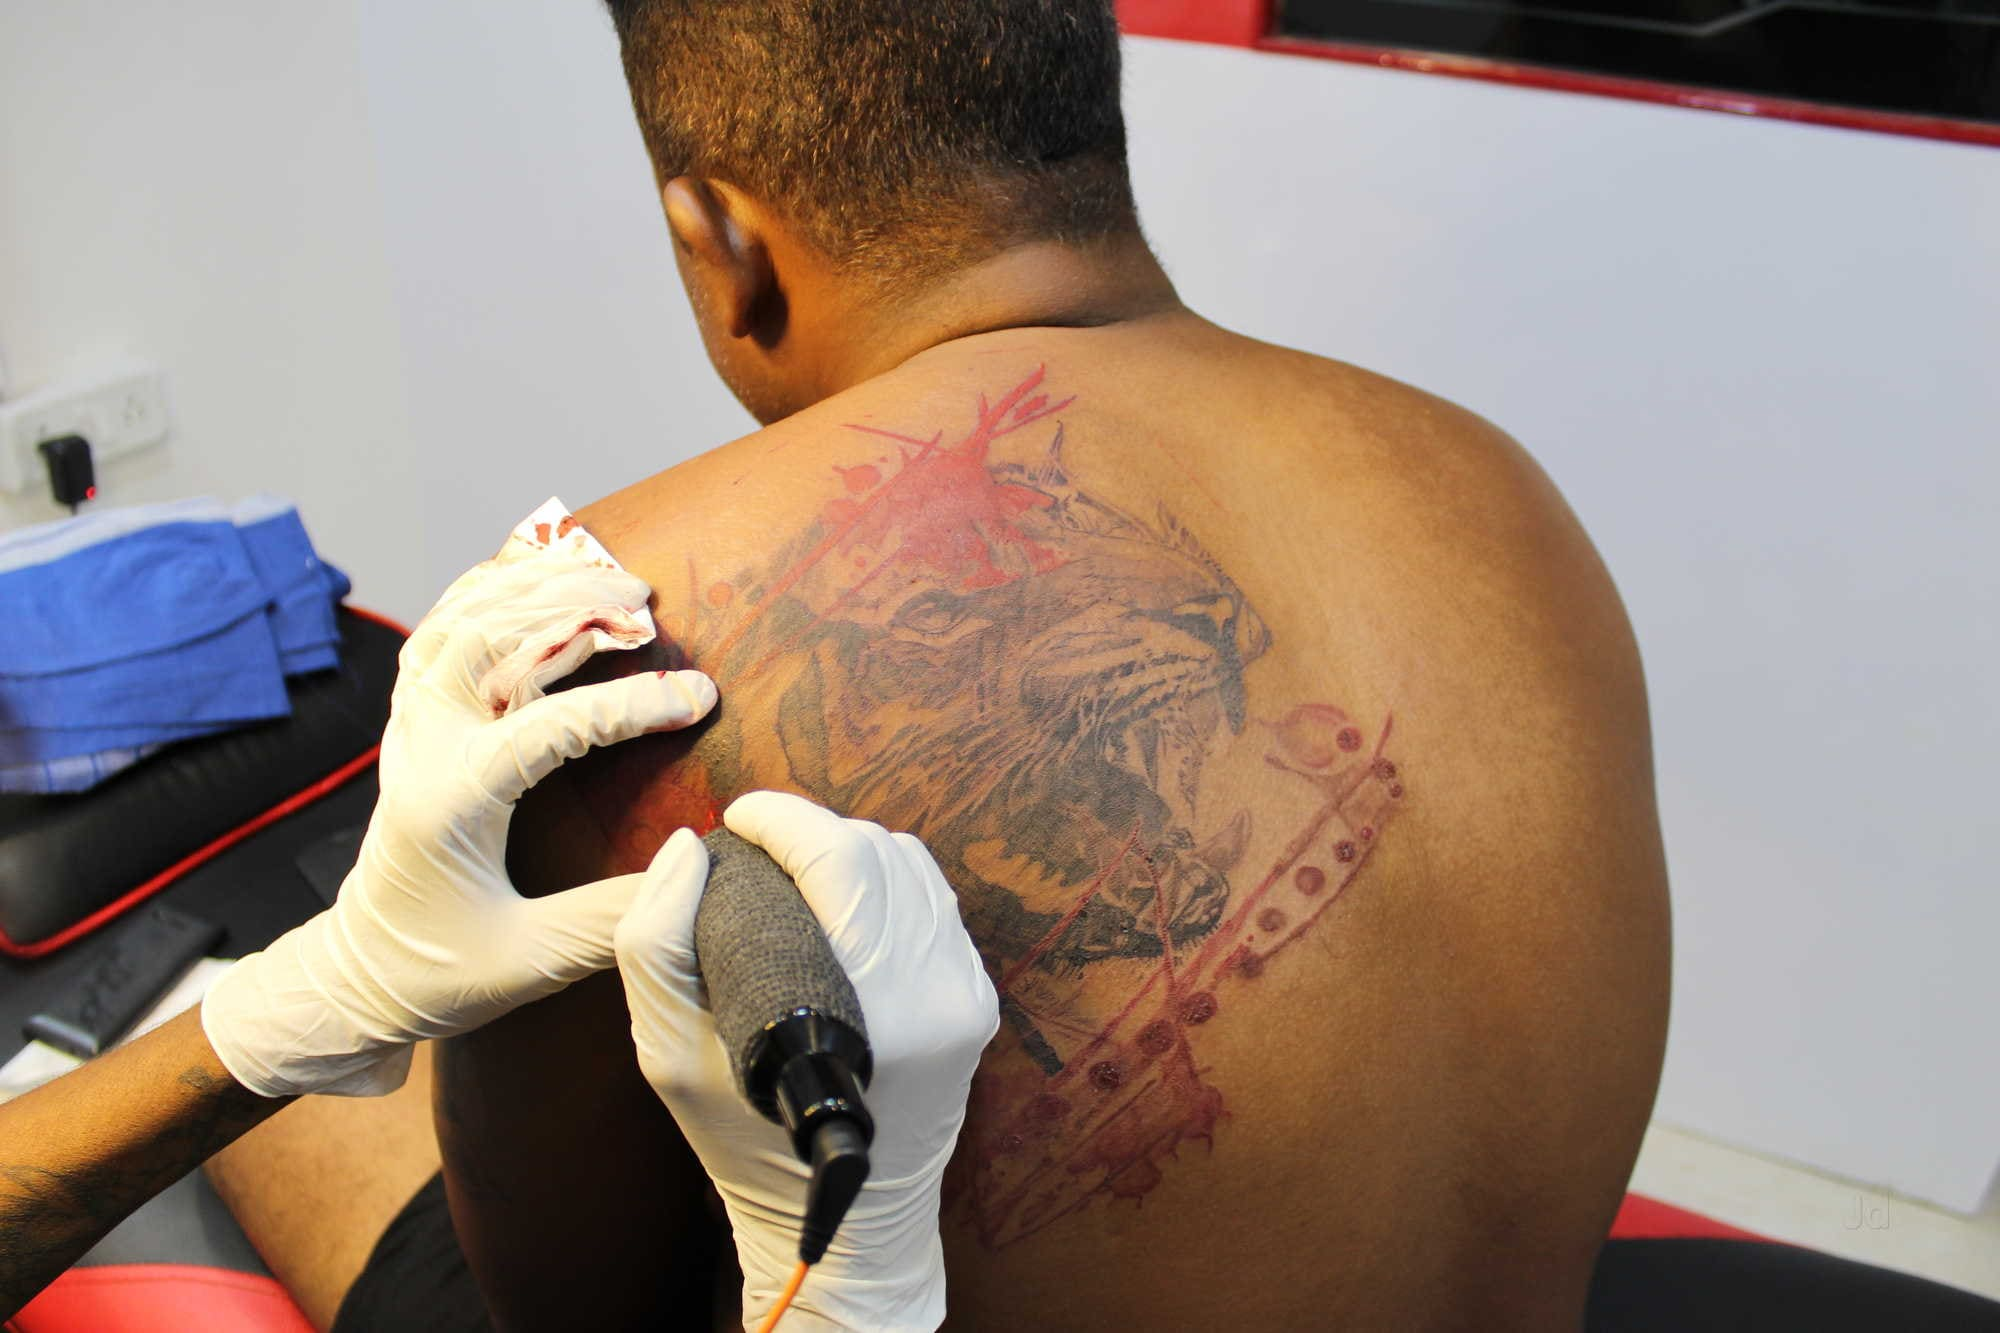 58a5074e5 Top 10 Permanent Tattoo Artists For Women in Pondicherry - Justdial